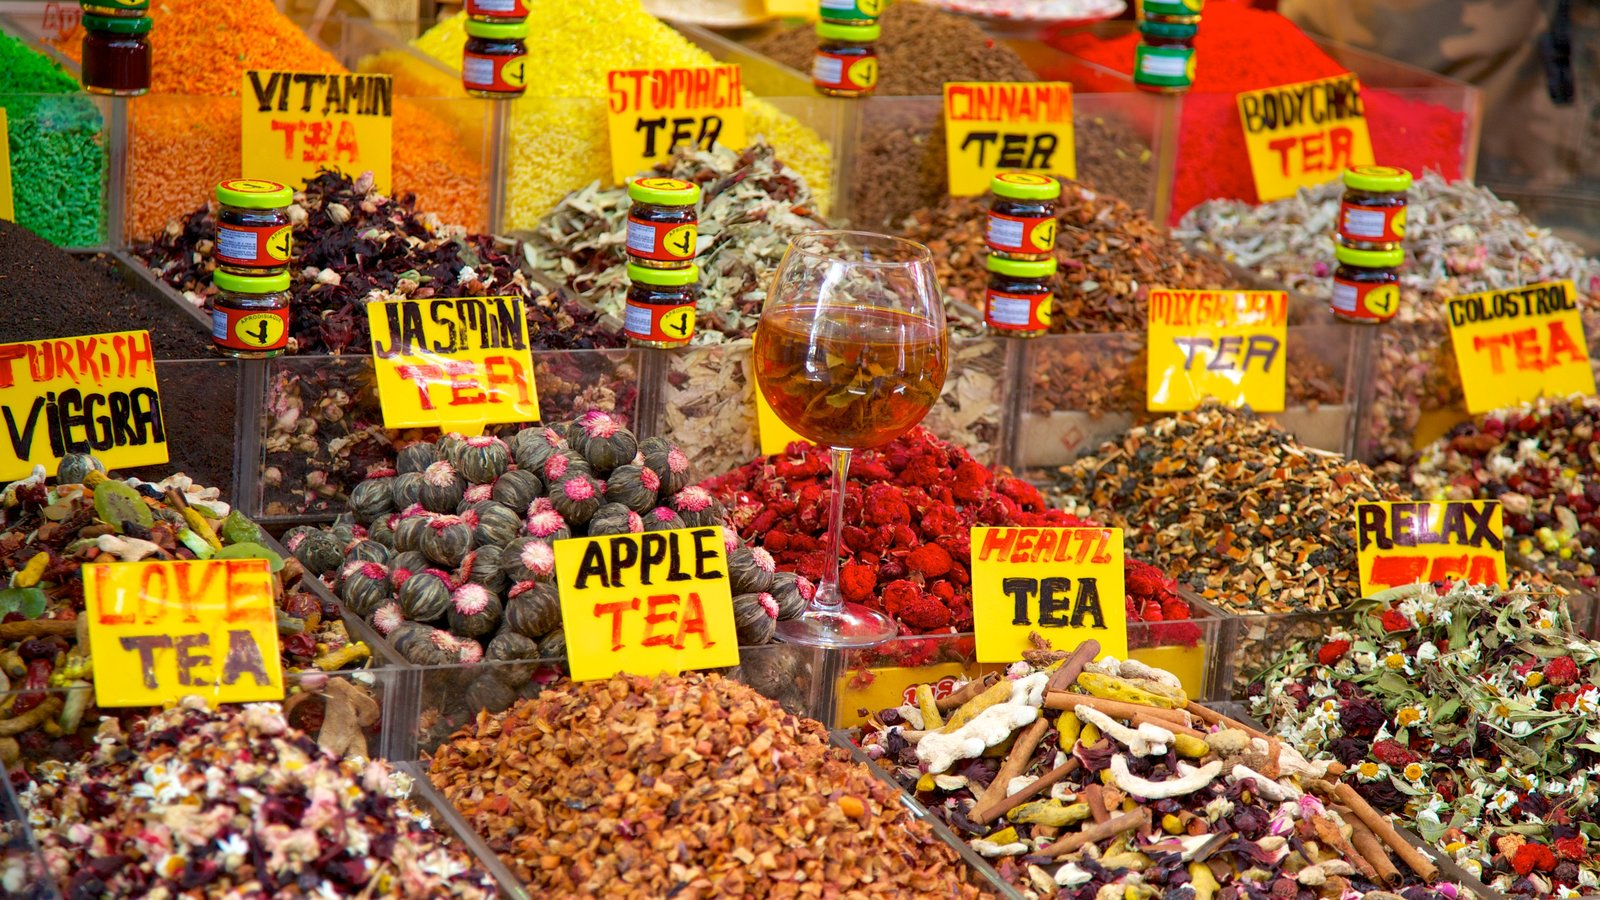 Grand Bazaar featuring markets and food